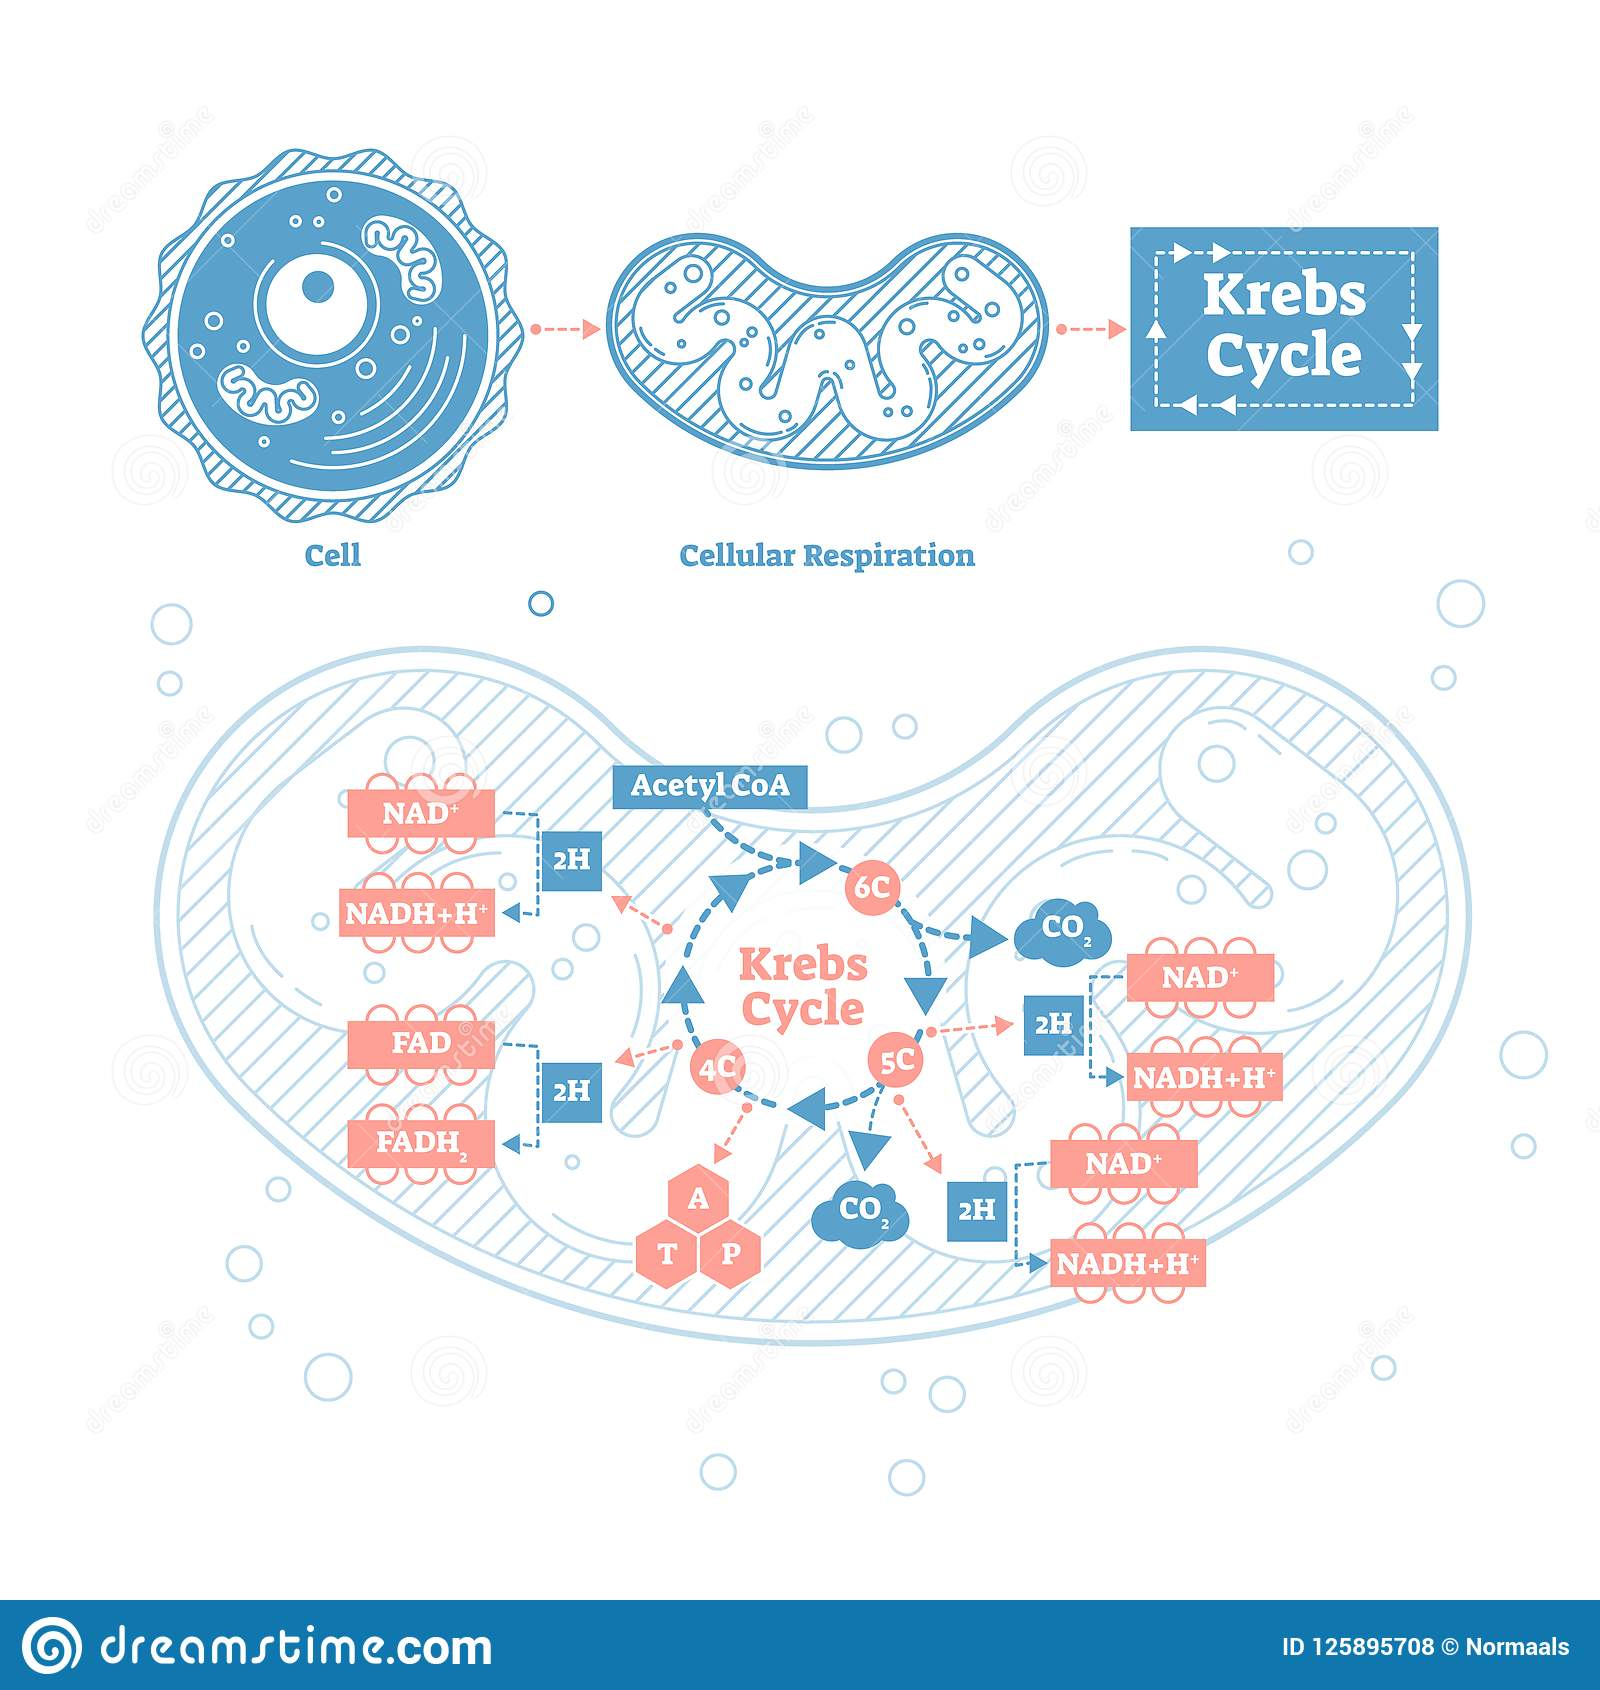 Krebs Cycle Vector Illustration Cellular Respiration